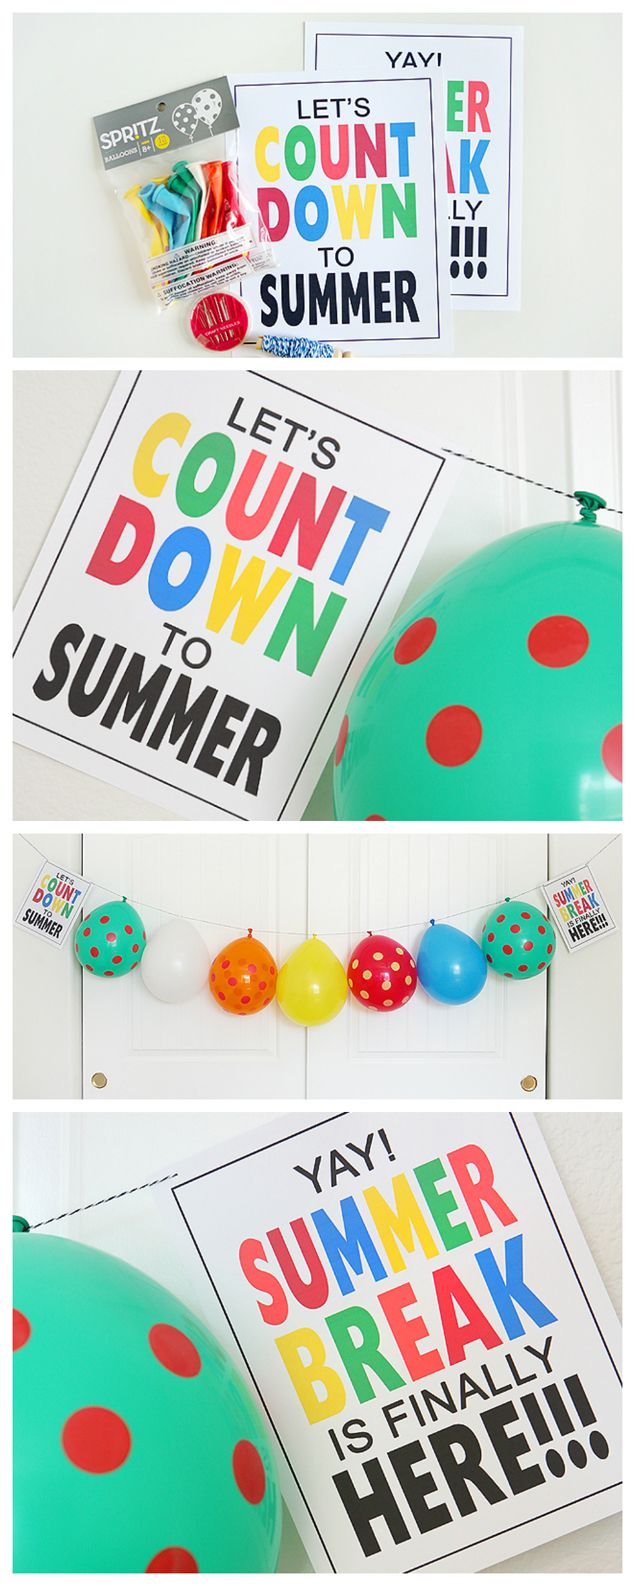 Balloon Countdown to Summer Break - grab the free prints and string some balloons. The kids are going to LOVE popping them each day.